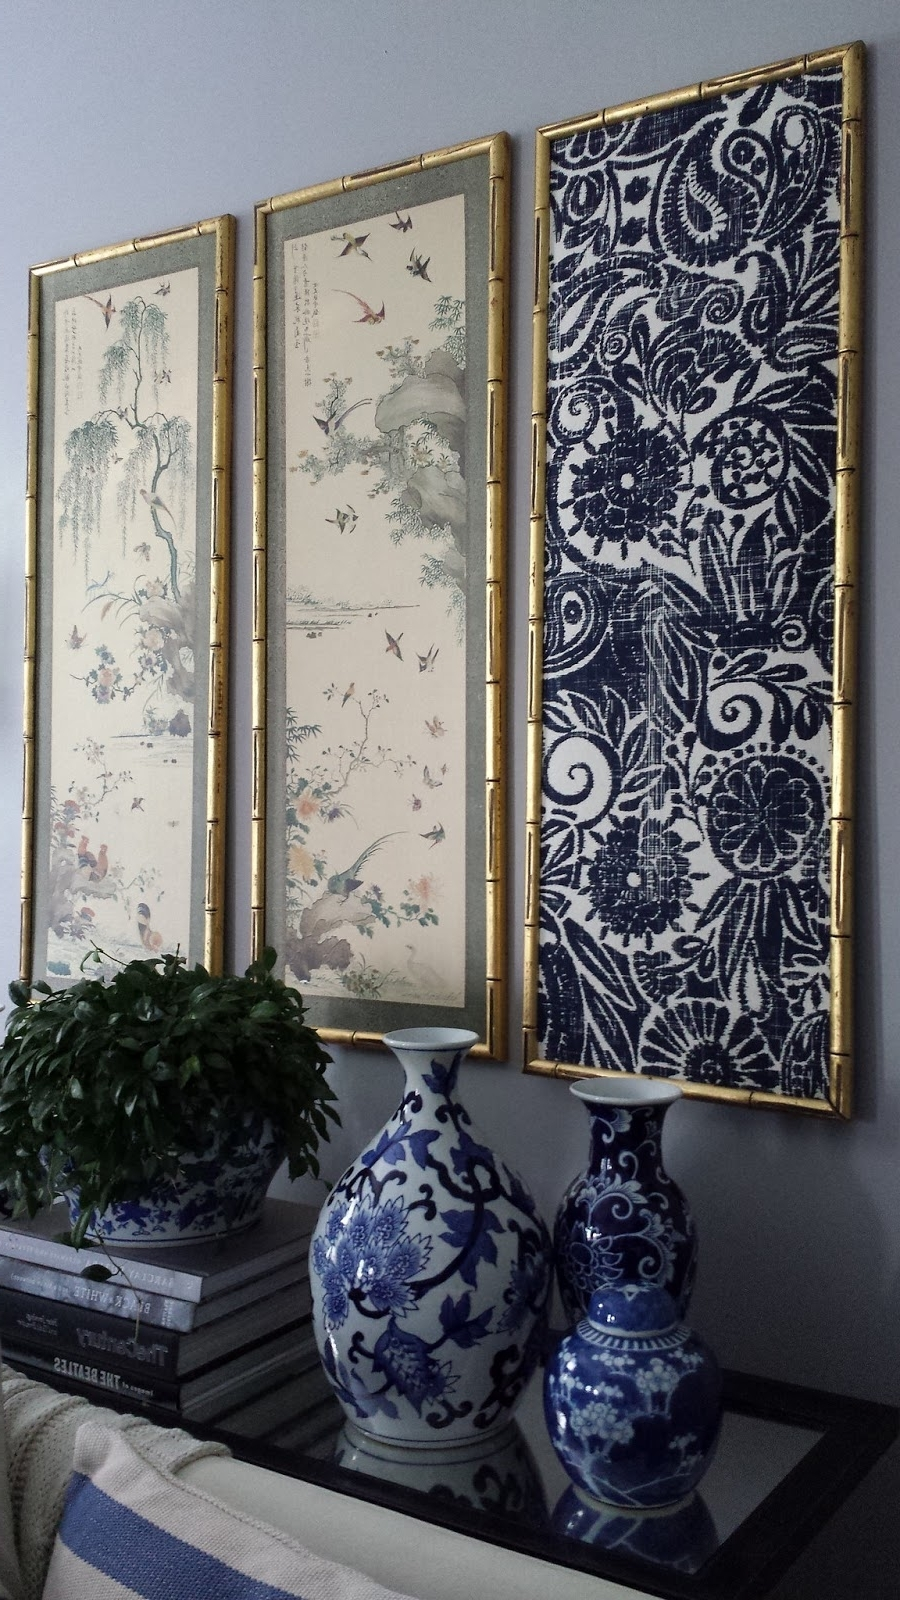 Focal Point Styling: Diy Indigo Wall Art With Framed Fabric Intended For Newest Framed Fabric Wall Art (View 4 of 15)